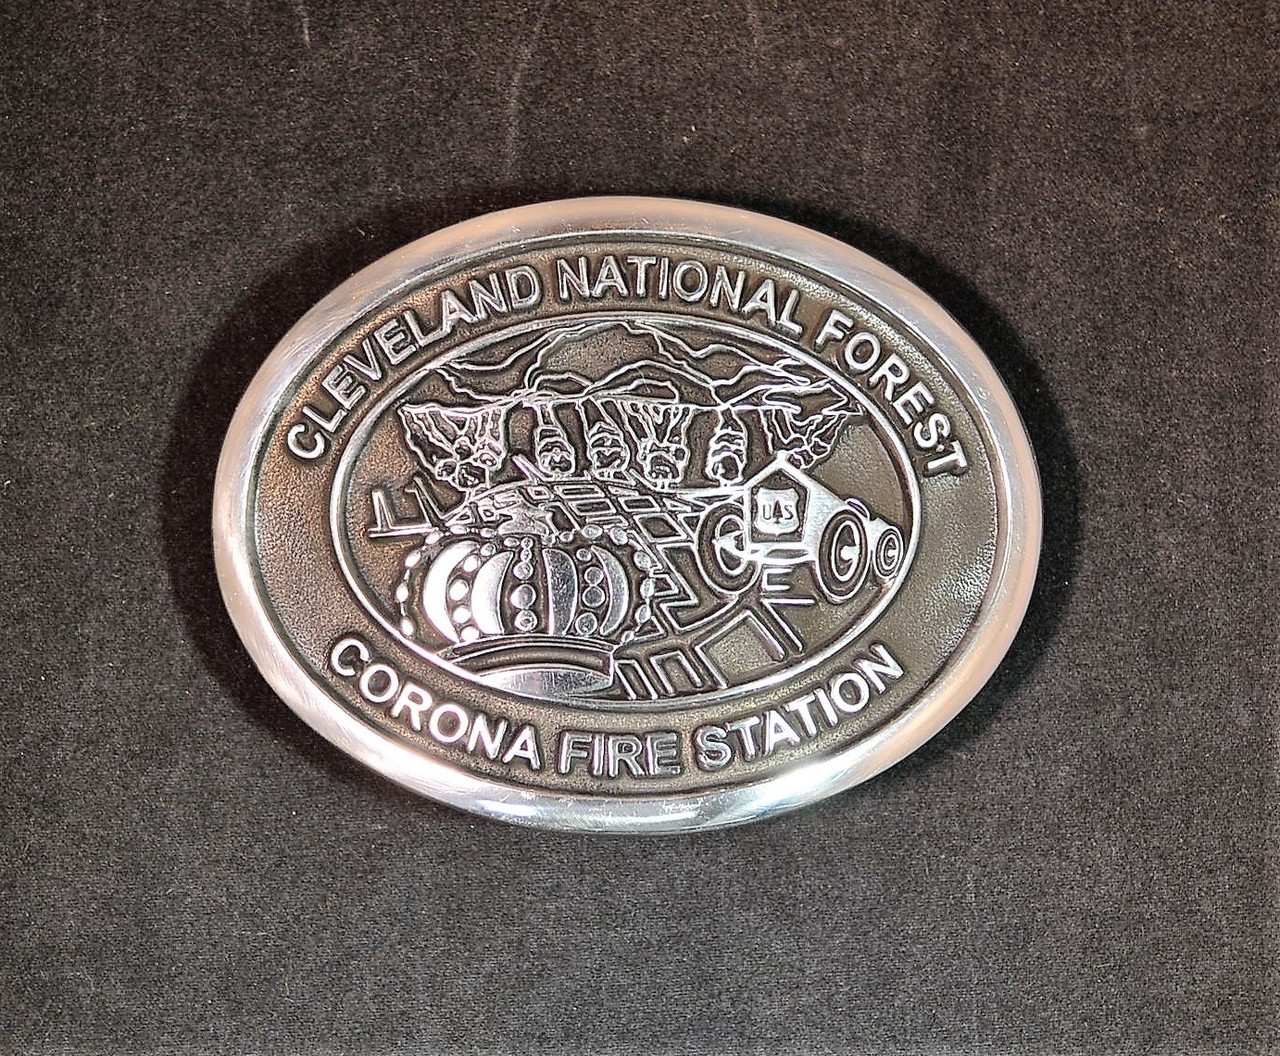 Cleveland National Forest Corona Fire Station Buckle (RESTRICTED)